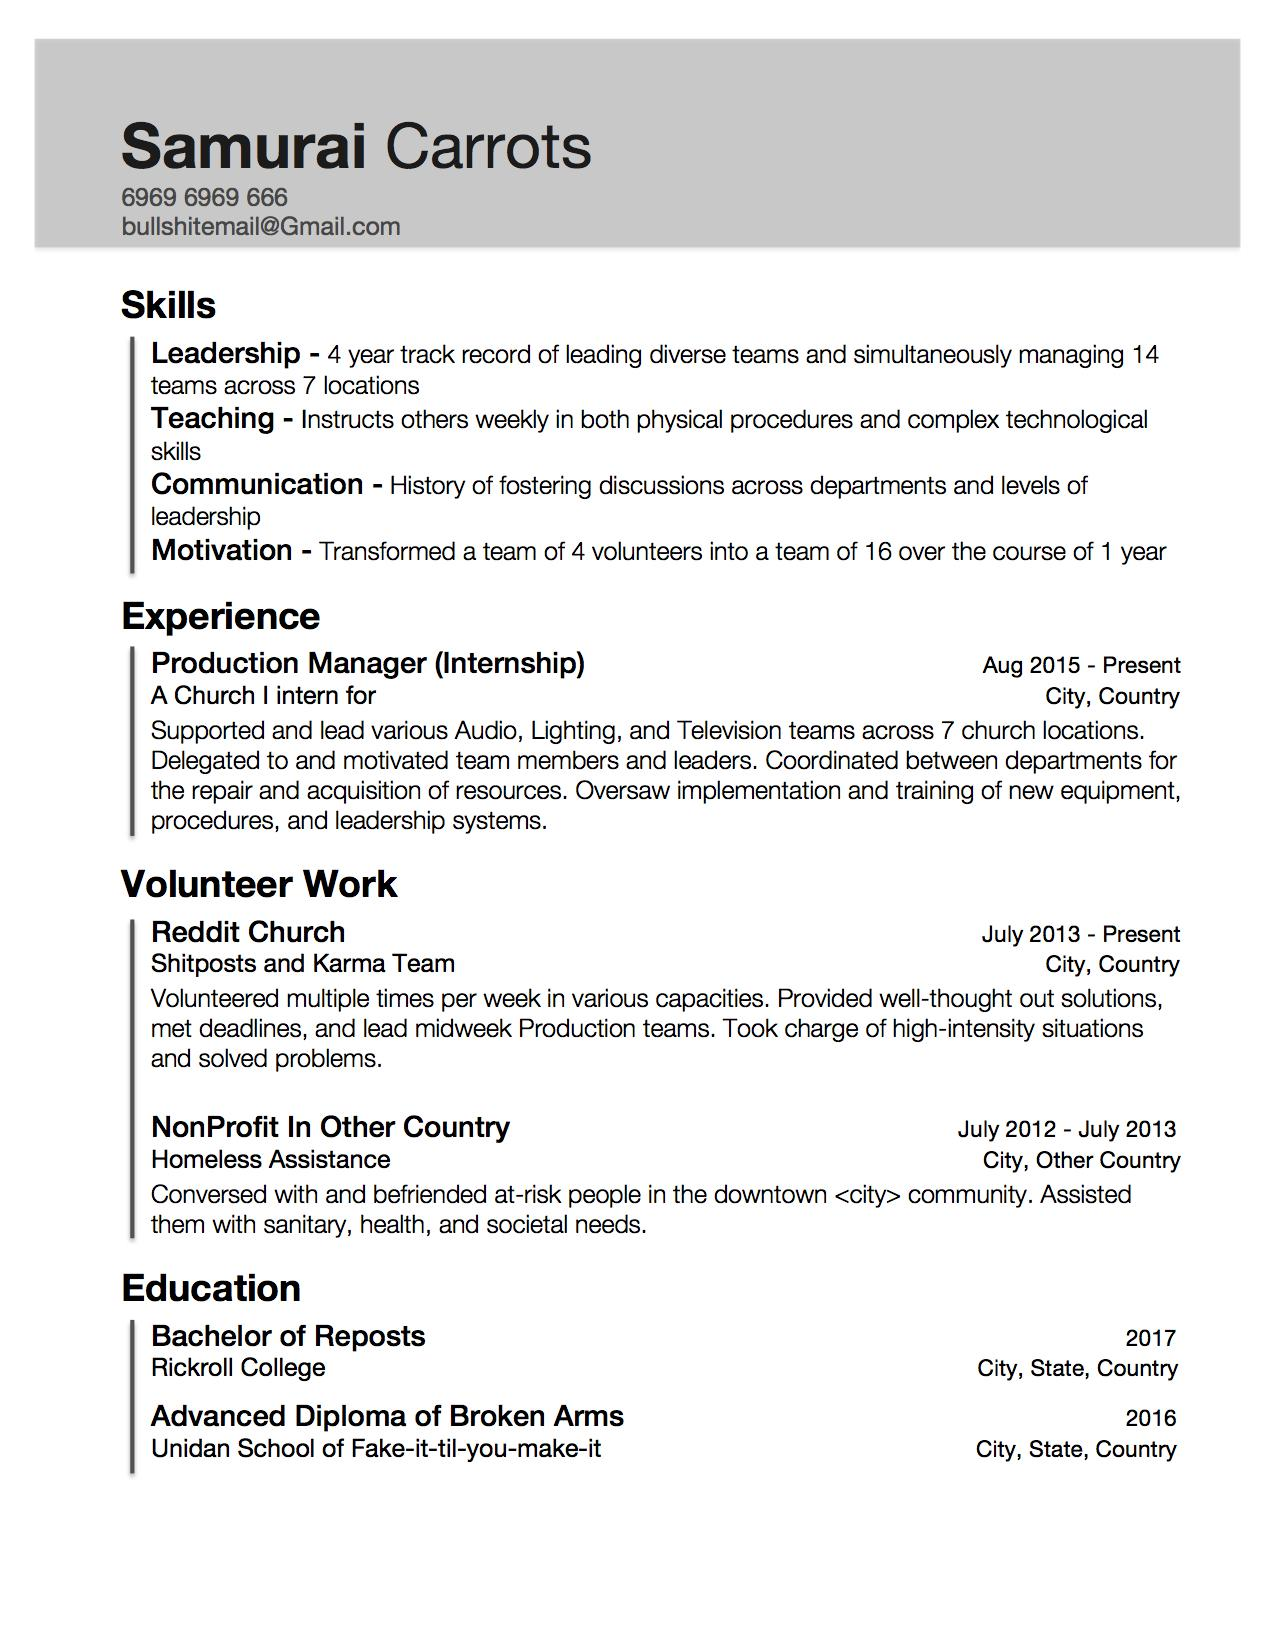 resume with little work experience but skills acquired through internship and Resume Resume With Not Much Work Experience